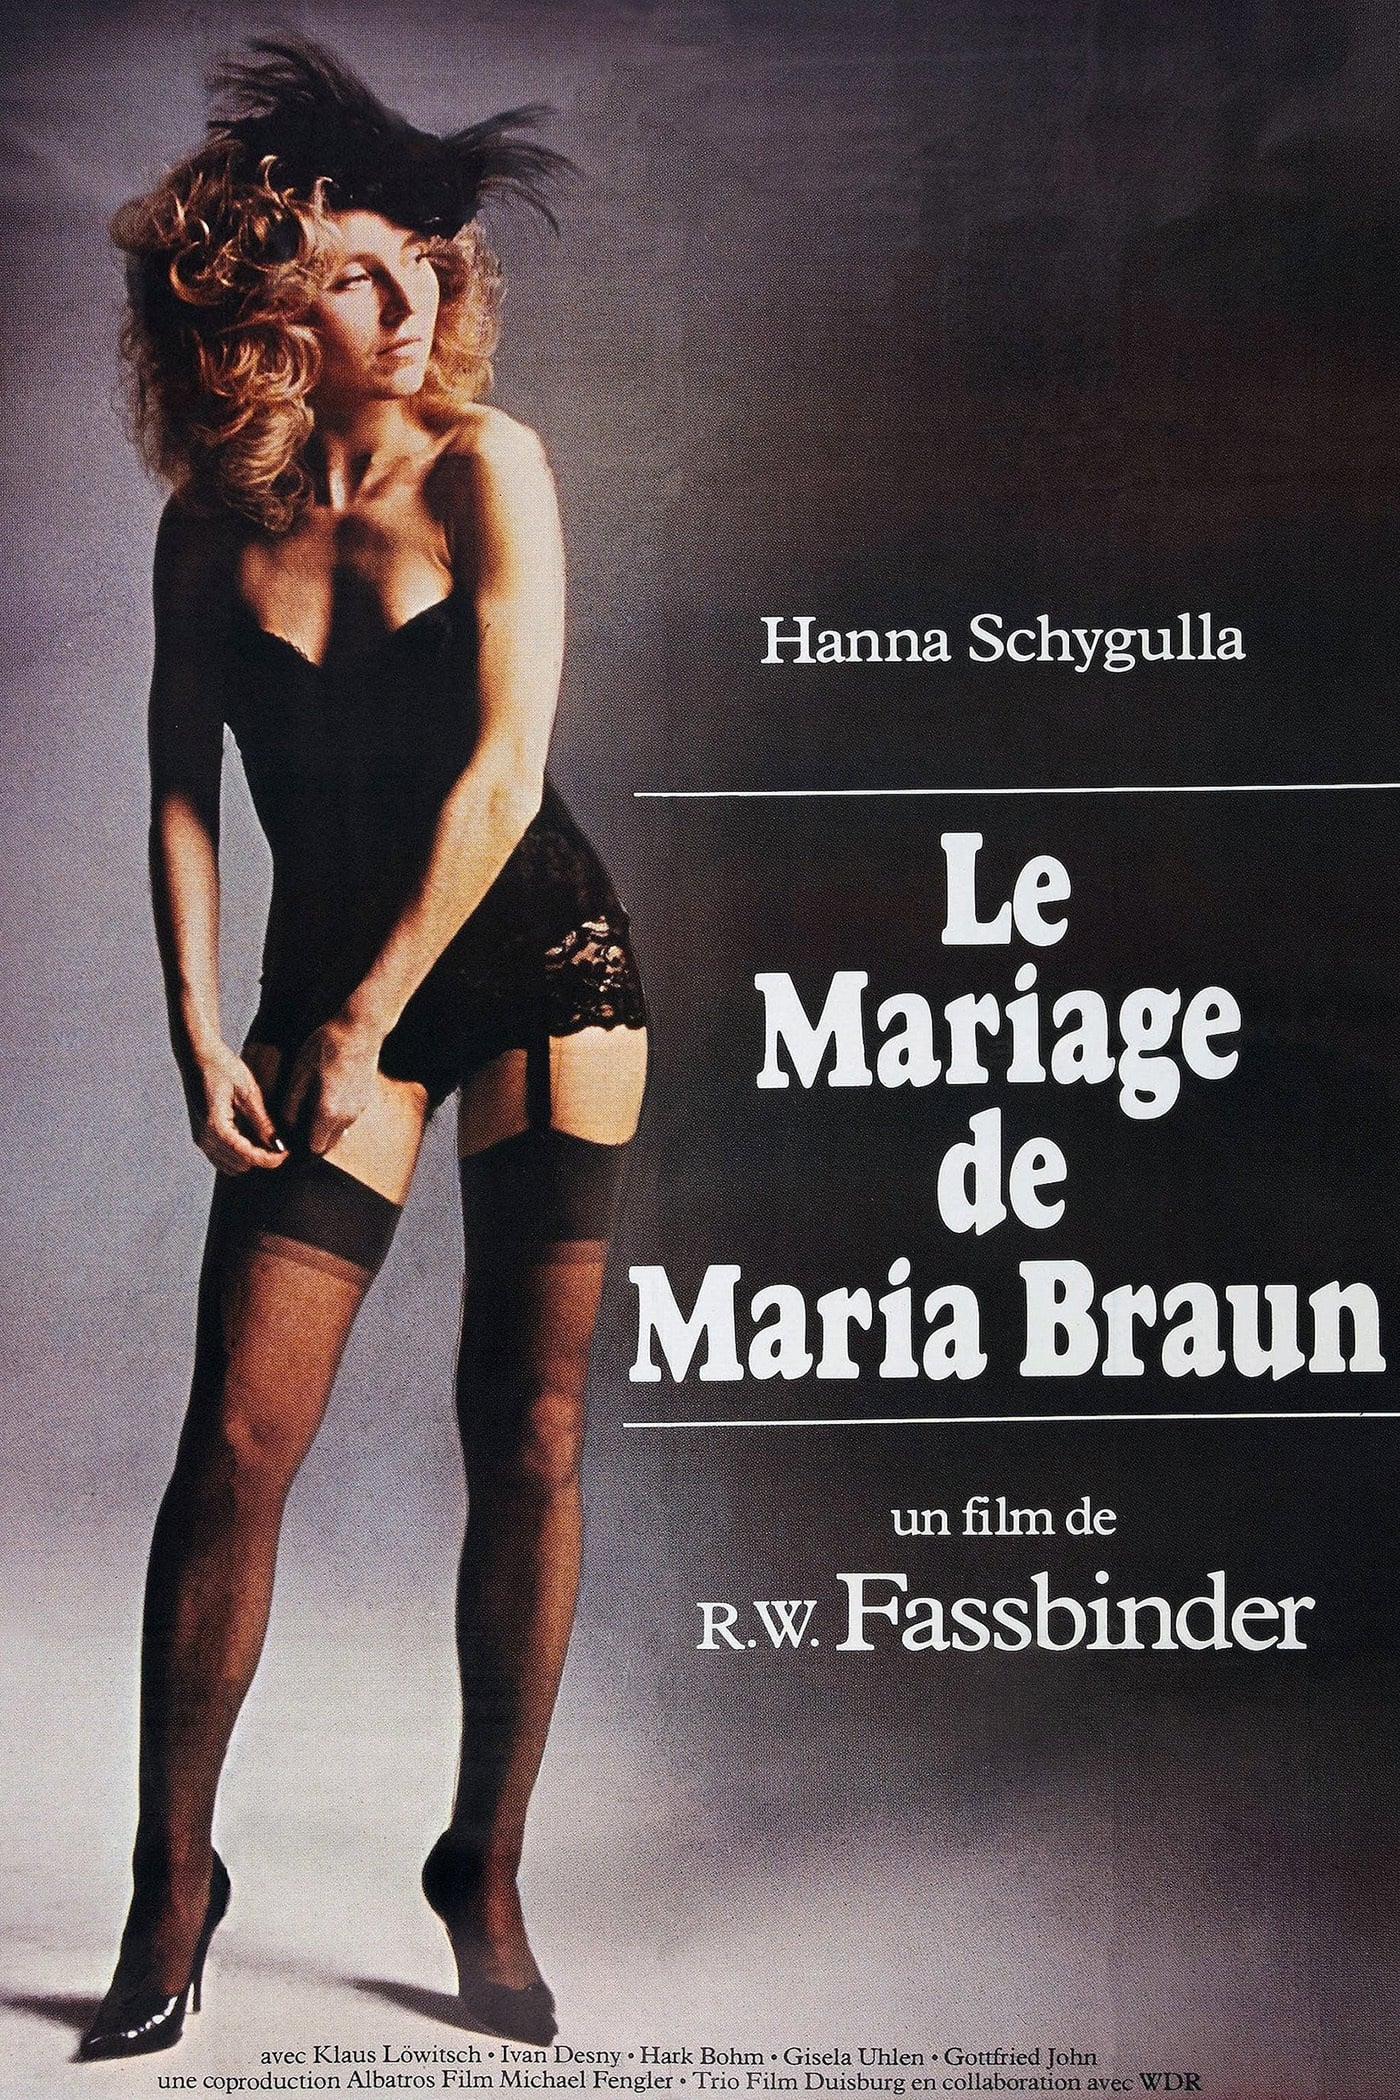 marriage of maria braun Watch the marriage of maria braun online the marriage of maria braun the 1979 movie reviews, trailers, videos and more at yidio.